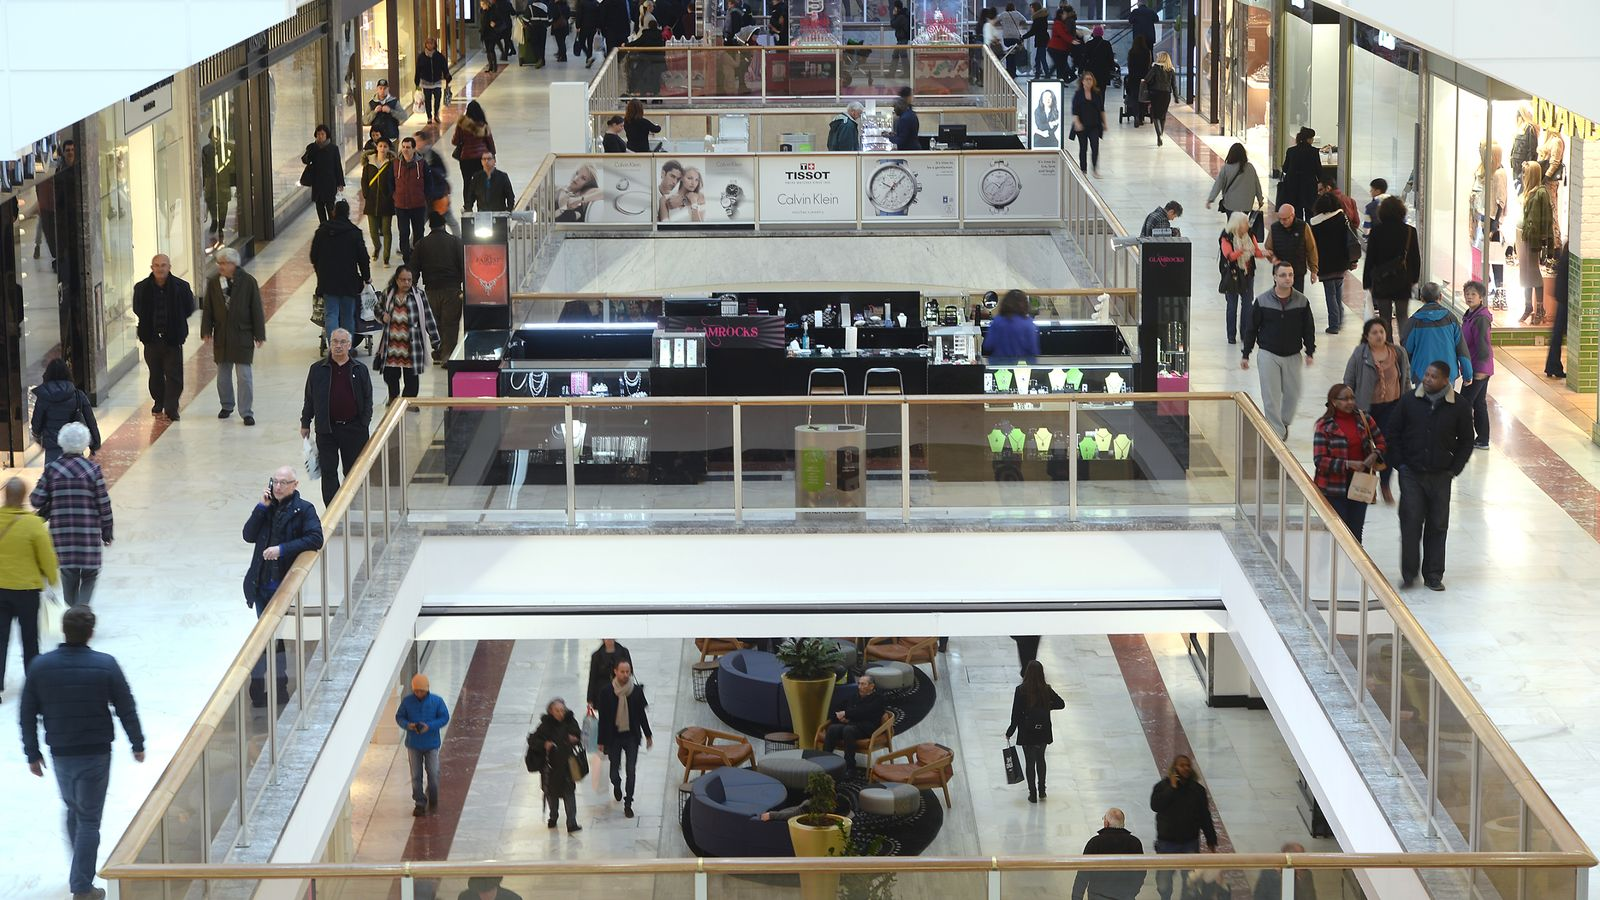 Teenager arrested after man fatally stabbed at Brent Cross Shopping Centre